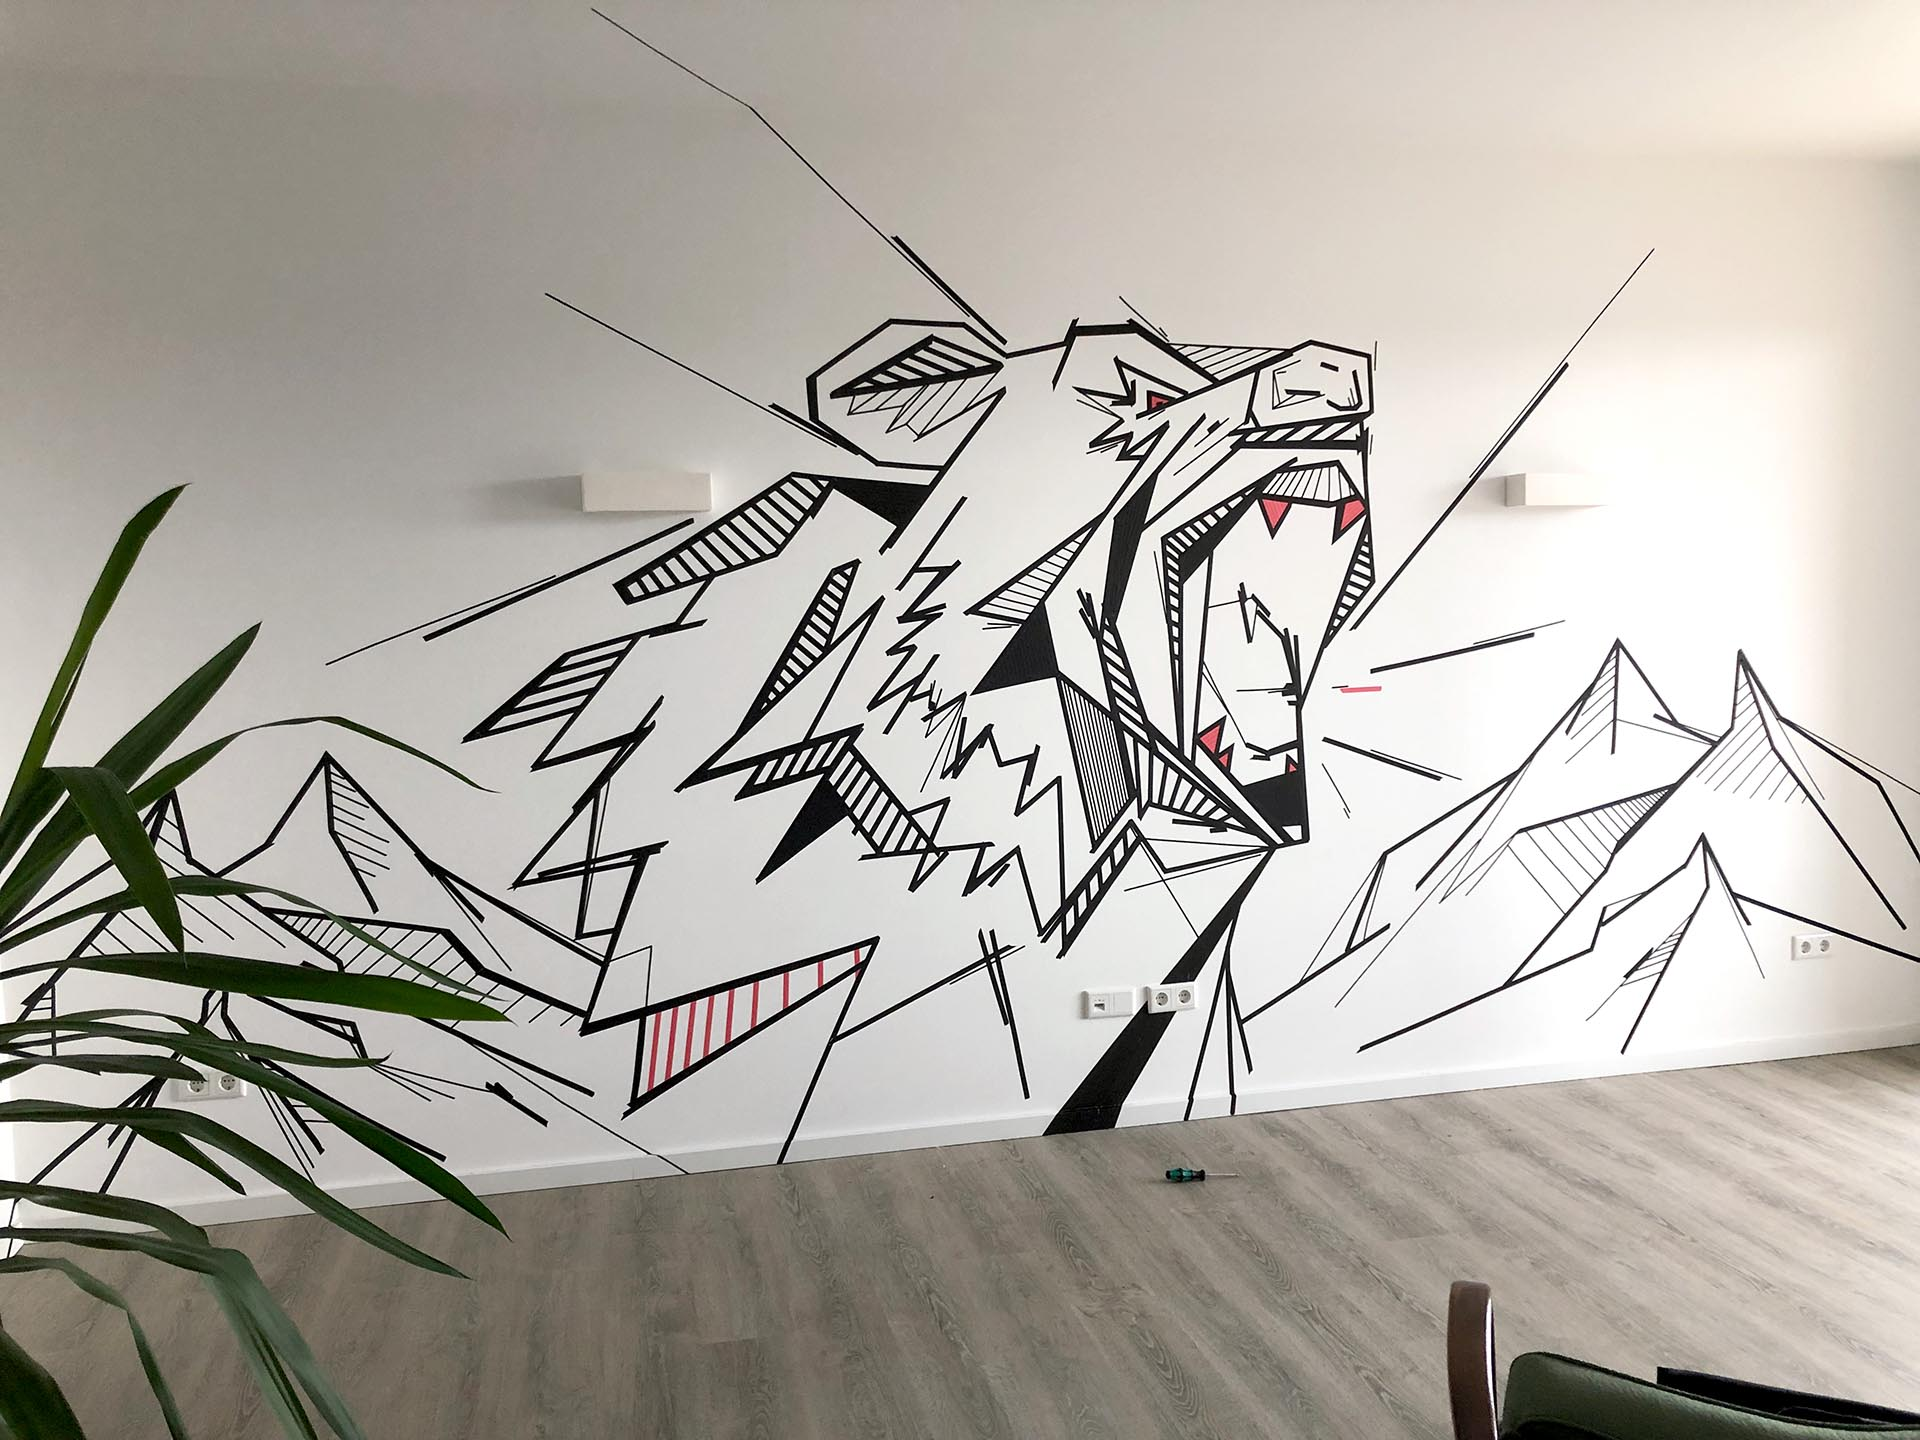 Tape-Art, Graffiti, Münster, Büro, Foyer, Design, Grafik, Piratelove, Auckz